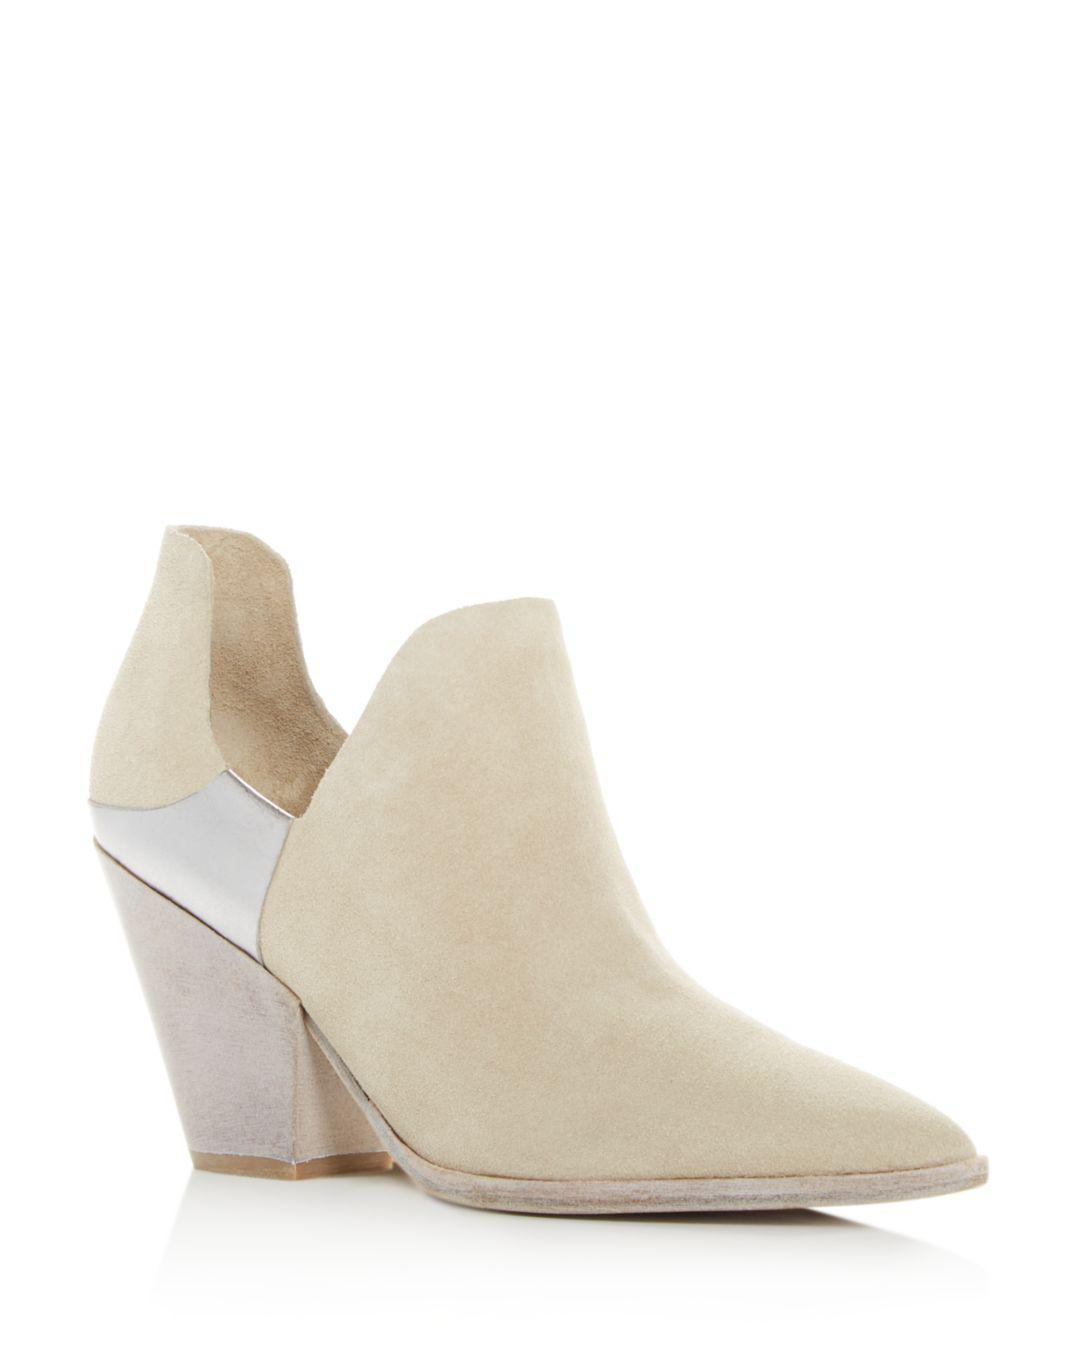 4322f41818f Lyst - Sigerson Morrison Women s Cathy Pointed-toe Booties in Natural